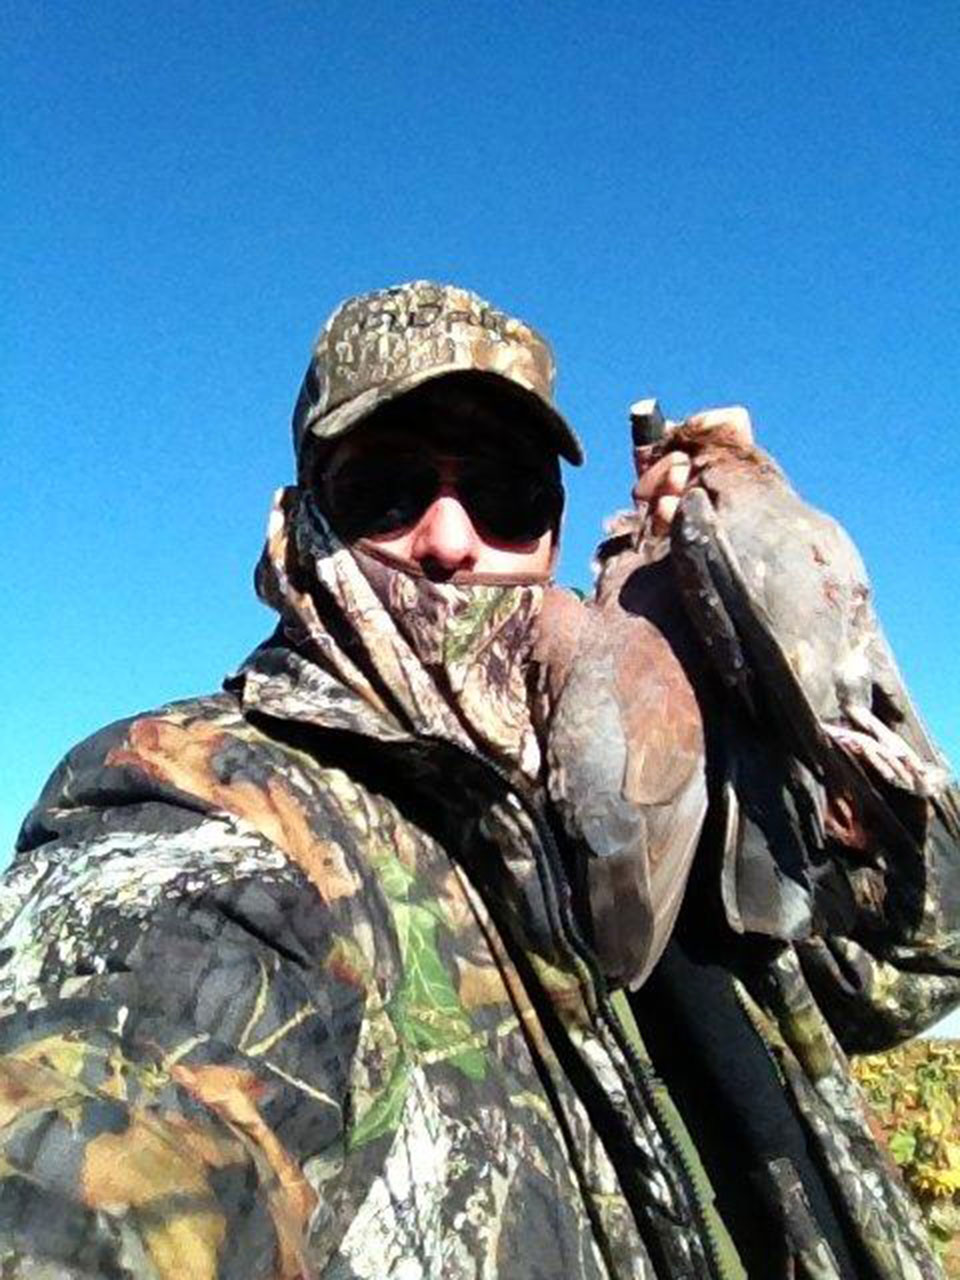 Pigeon-and-Dove-Hunting-Outfitters-in-Africa.jpg